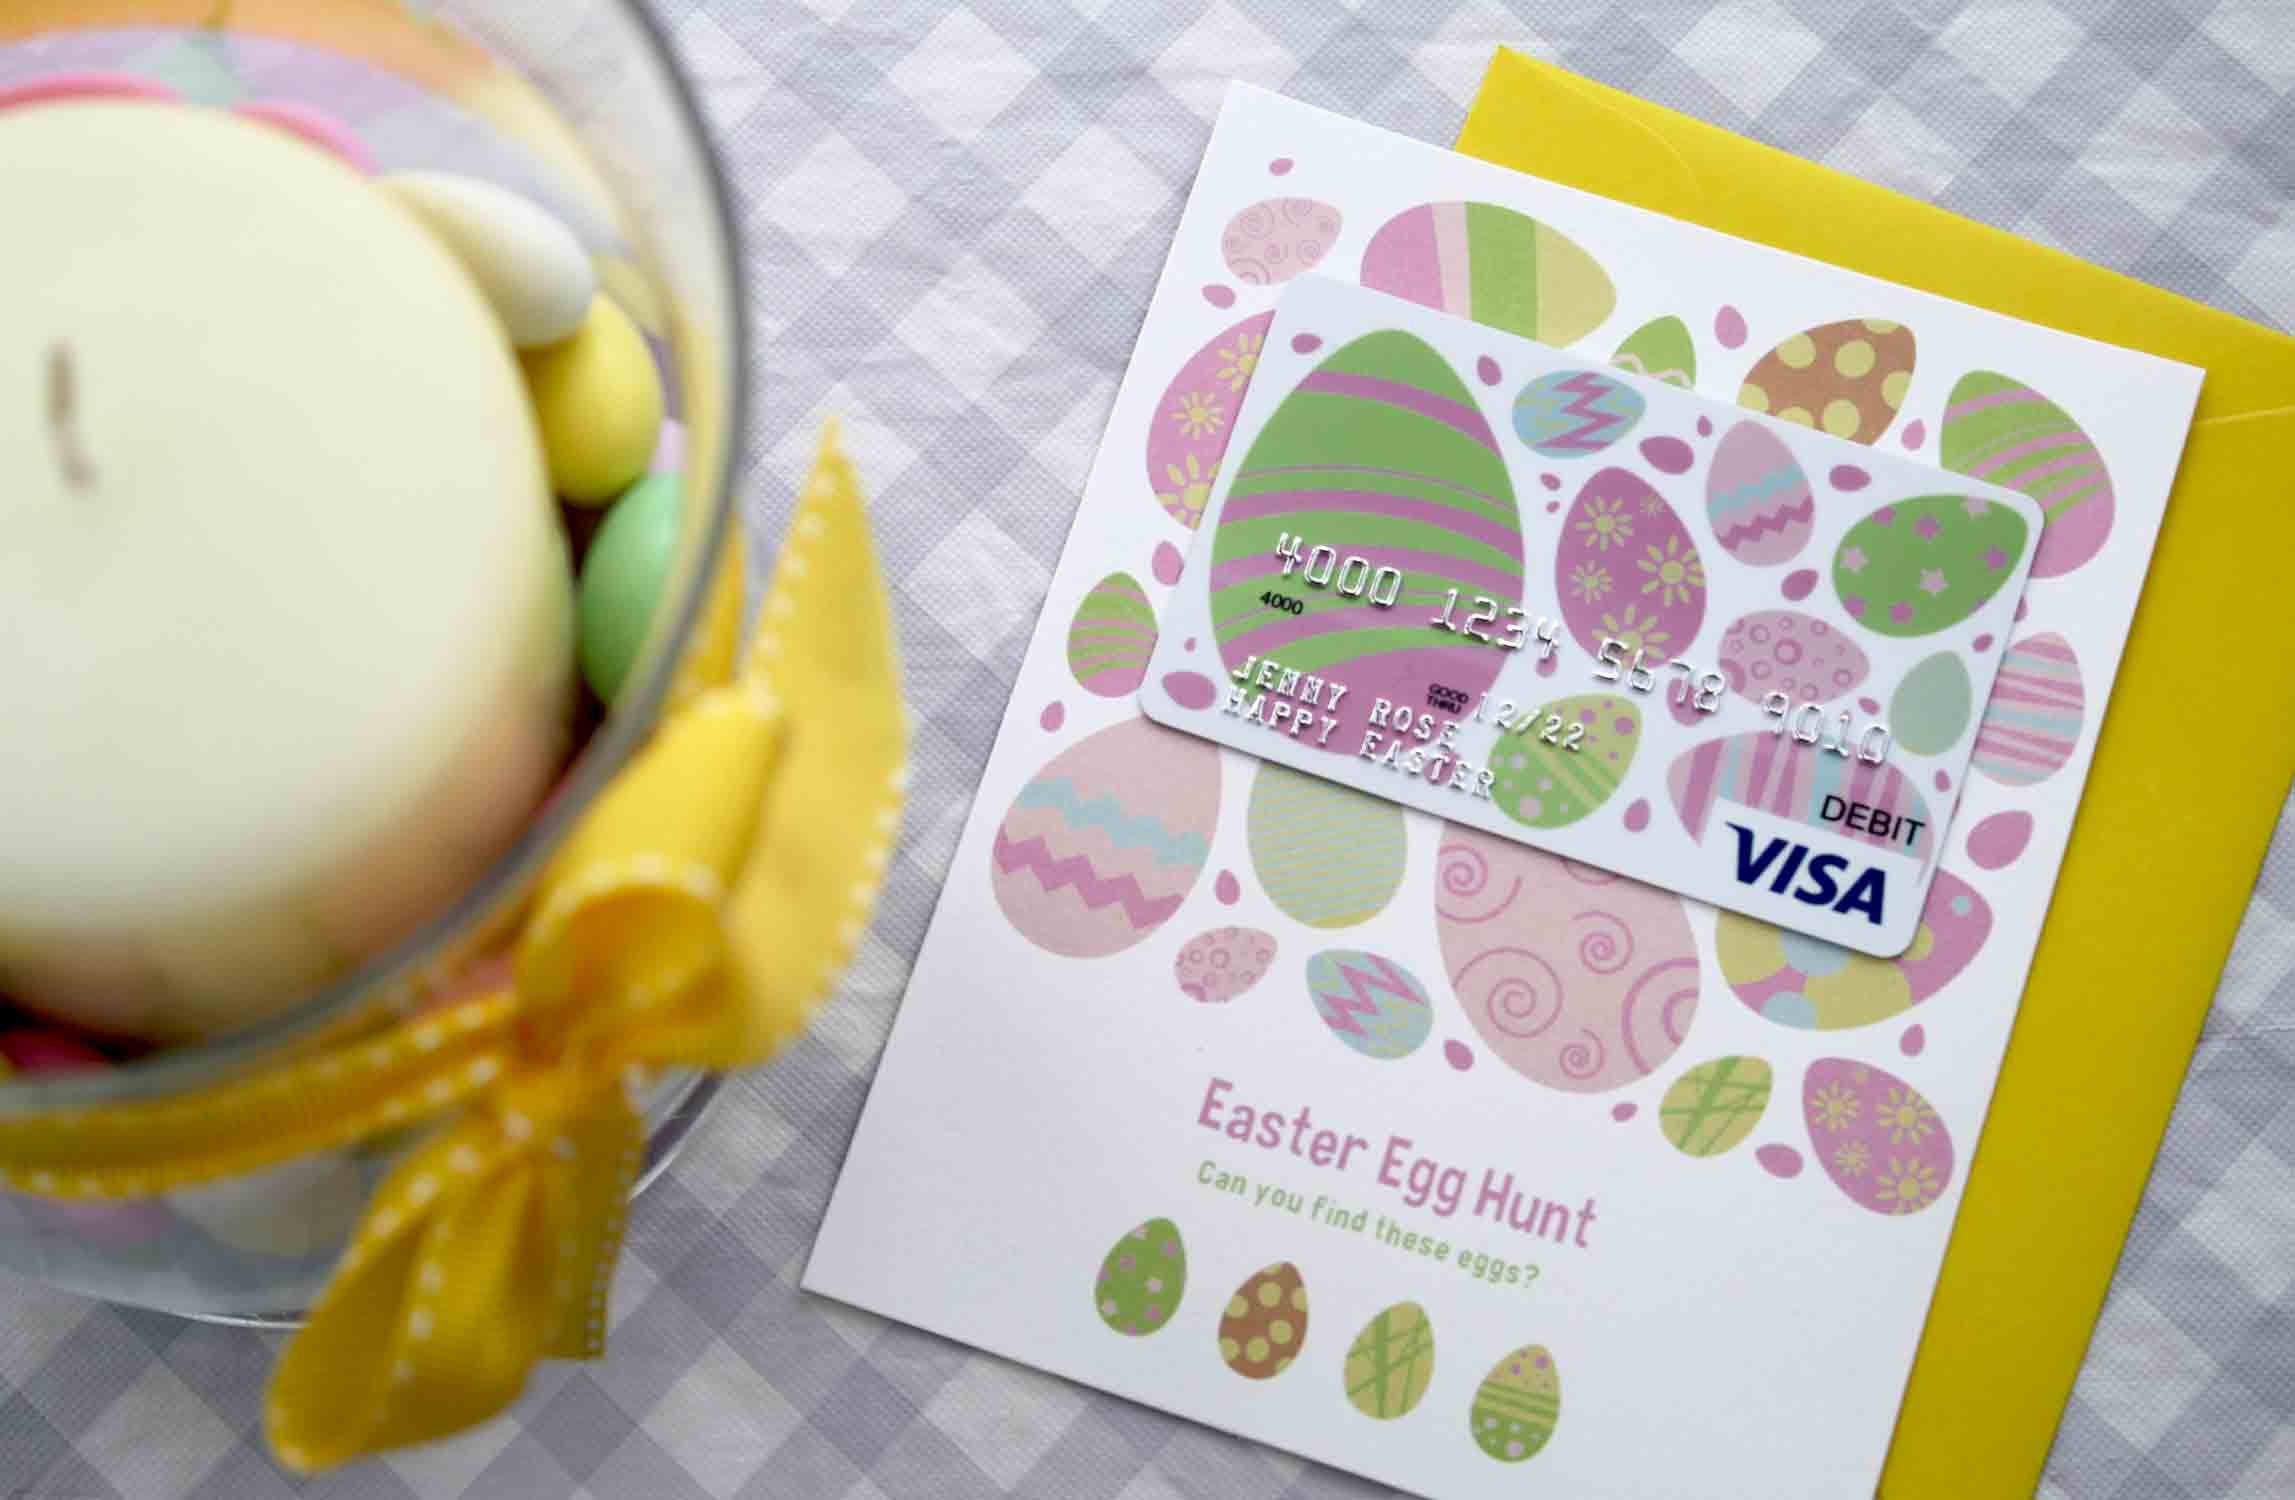 Free printable gift card holder is an easter egg hunt gcg finished flat gift card holder negle Gallery